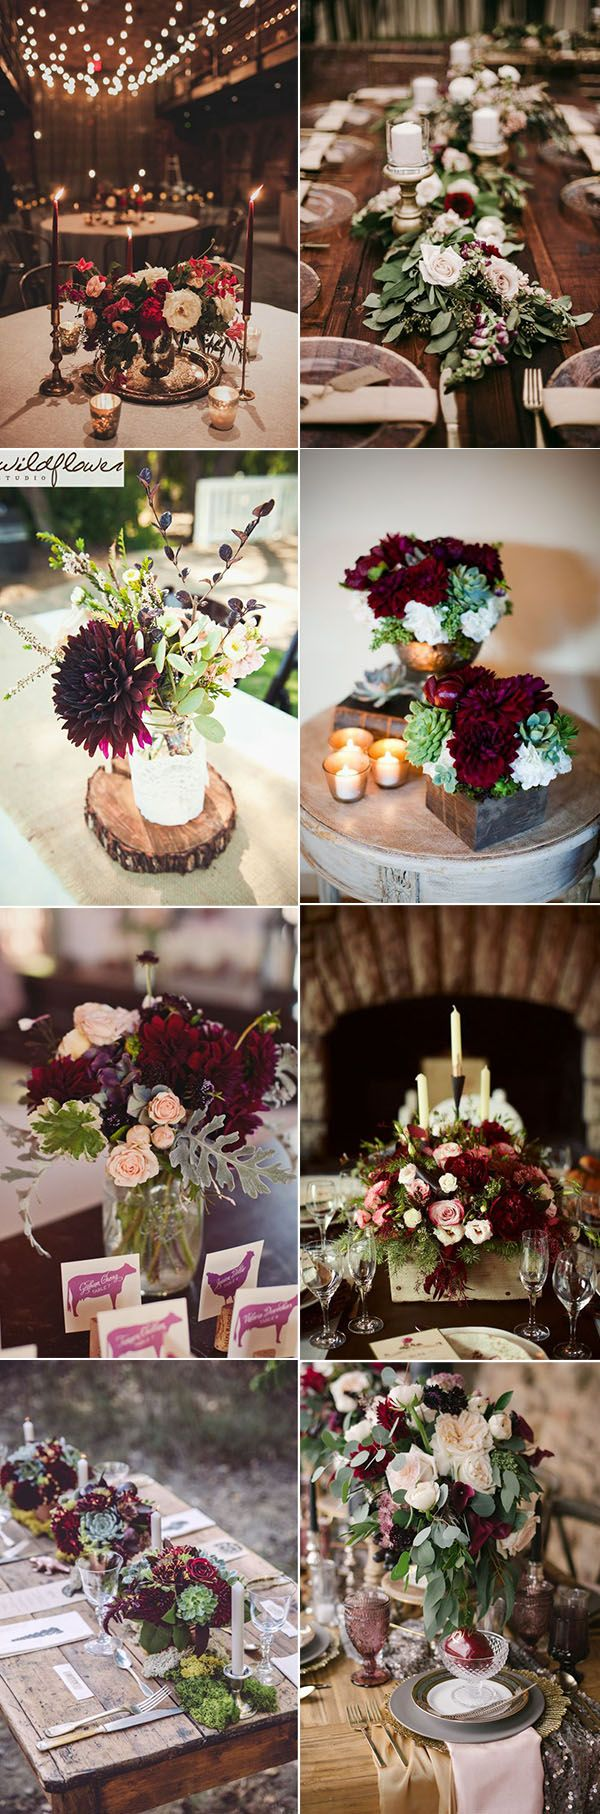 50 refined burgundy and marsala wedding color ideas for fall brides beautiful burgundy wedding centerpieces ideas for any wedding themes junglespirit Choice Image